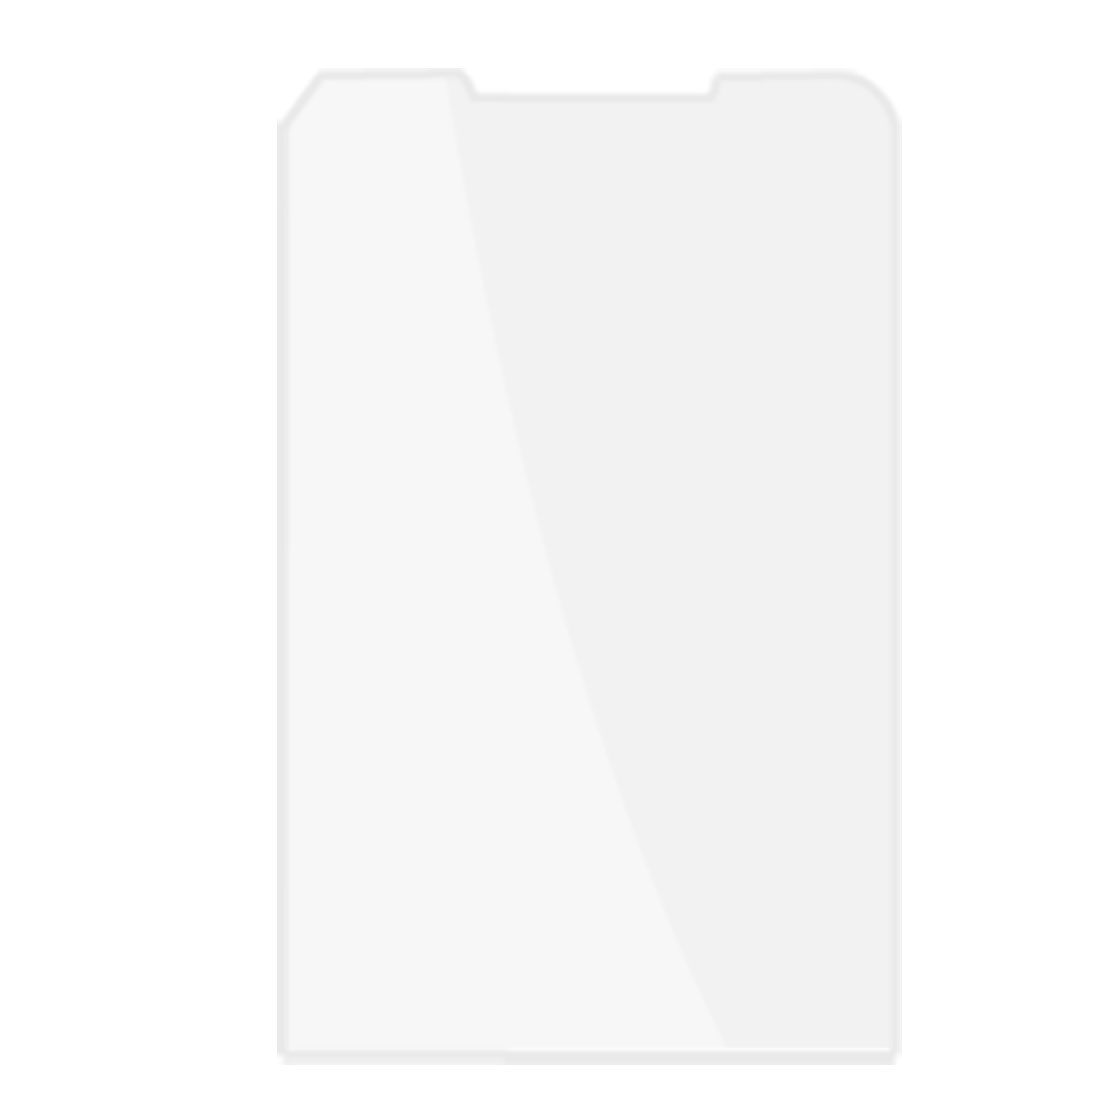 2 Pcs Clear Plastic Screen Protector Film for HTC HD2